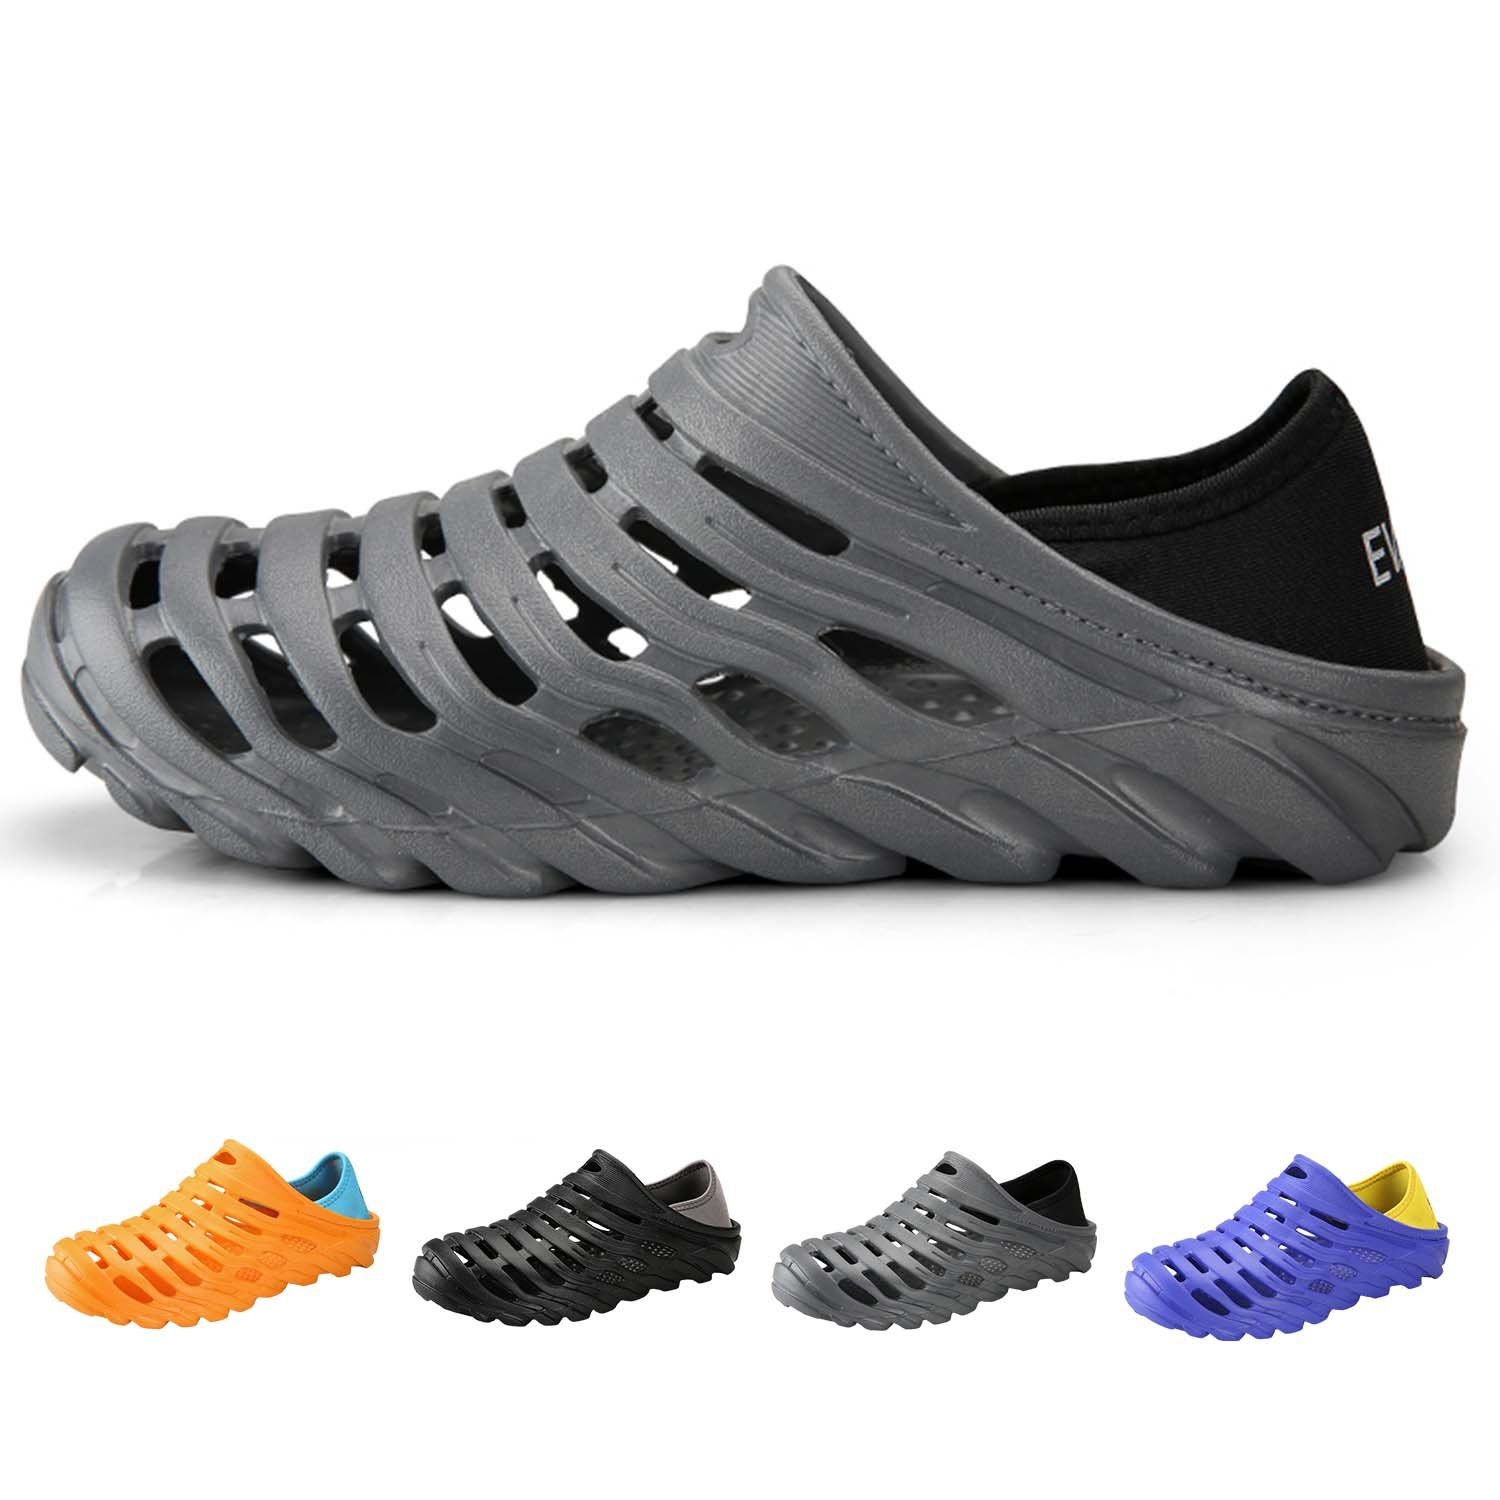 PHILDA Men's Lightweight Breathable Slippers Quick-Drying Water Shoes Non-Slip Round Head Garden Clogs Sandals for Summer Grey 44